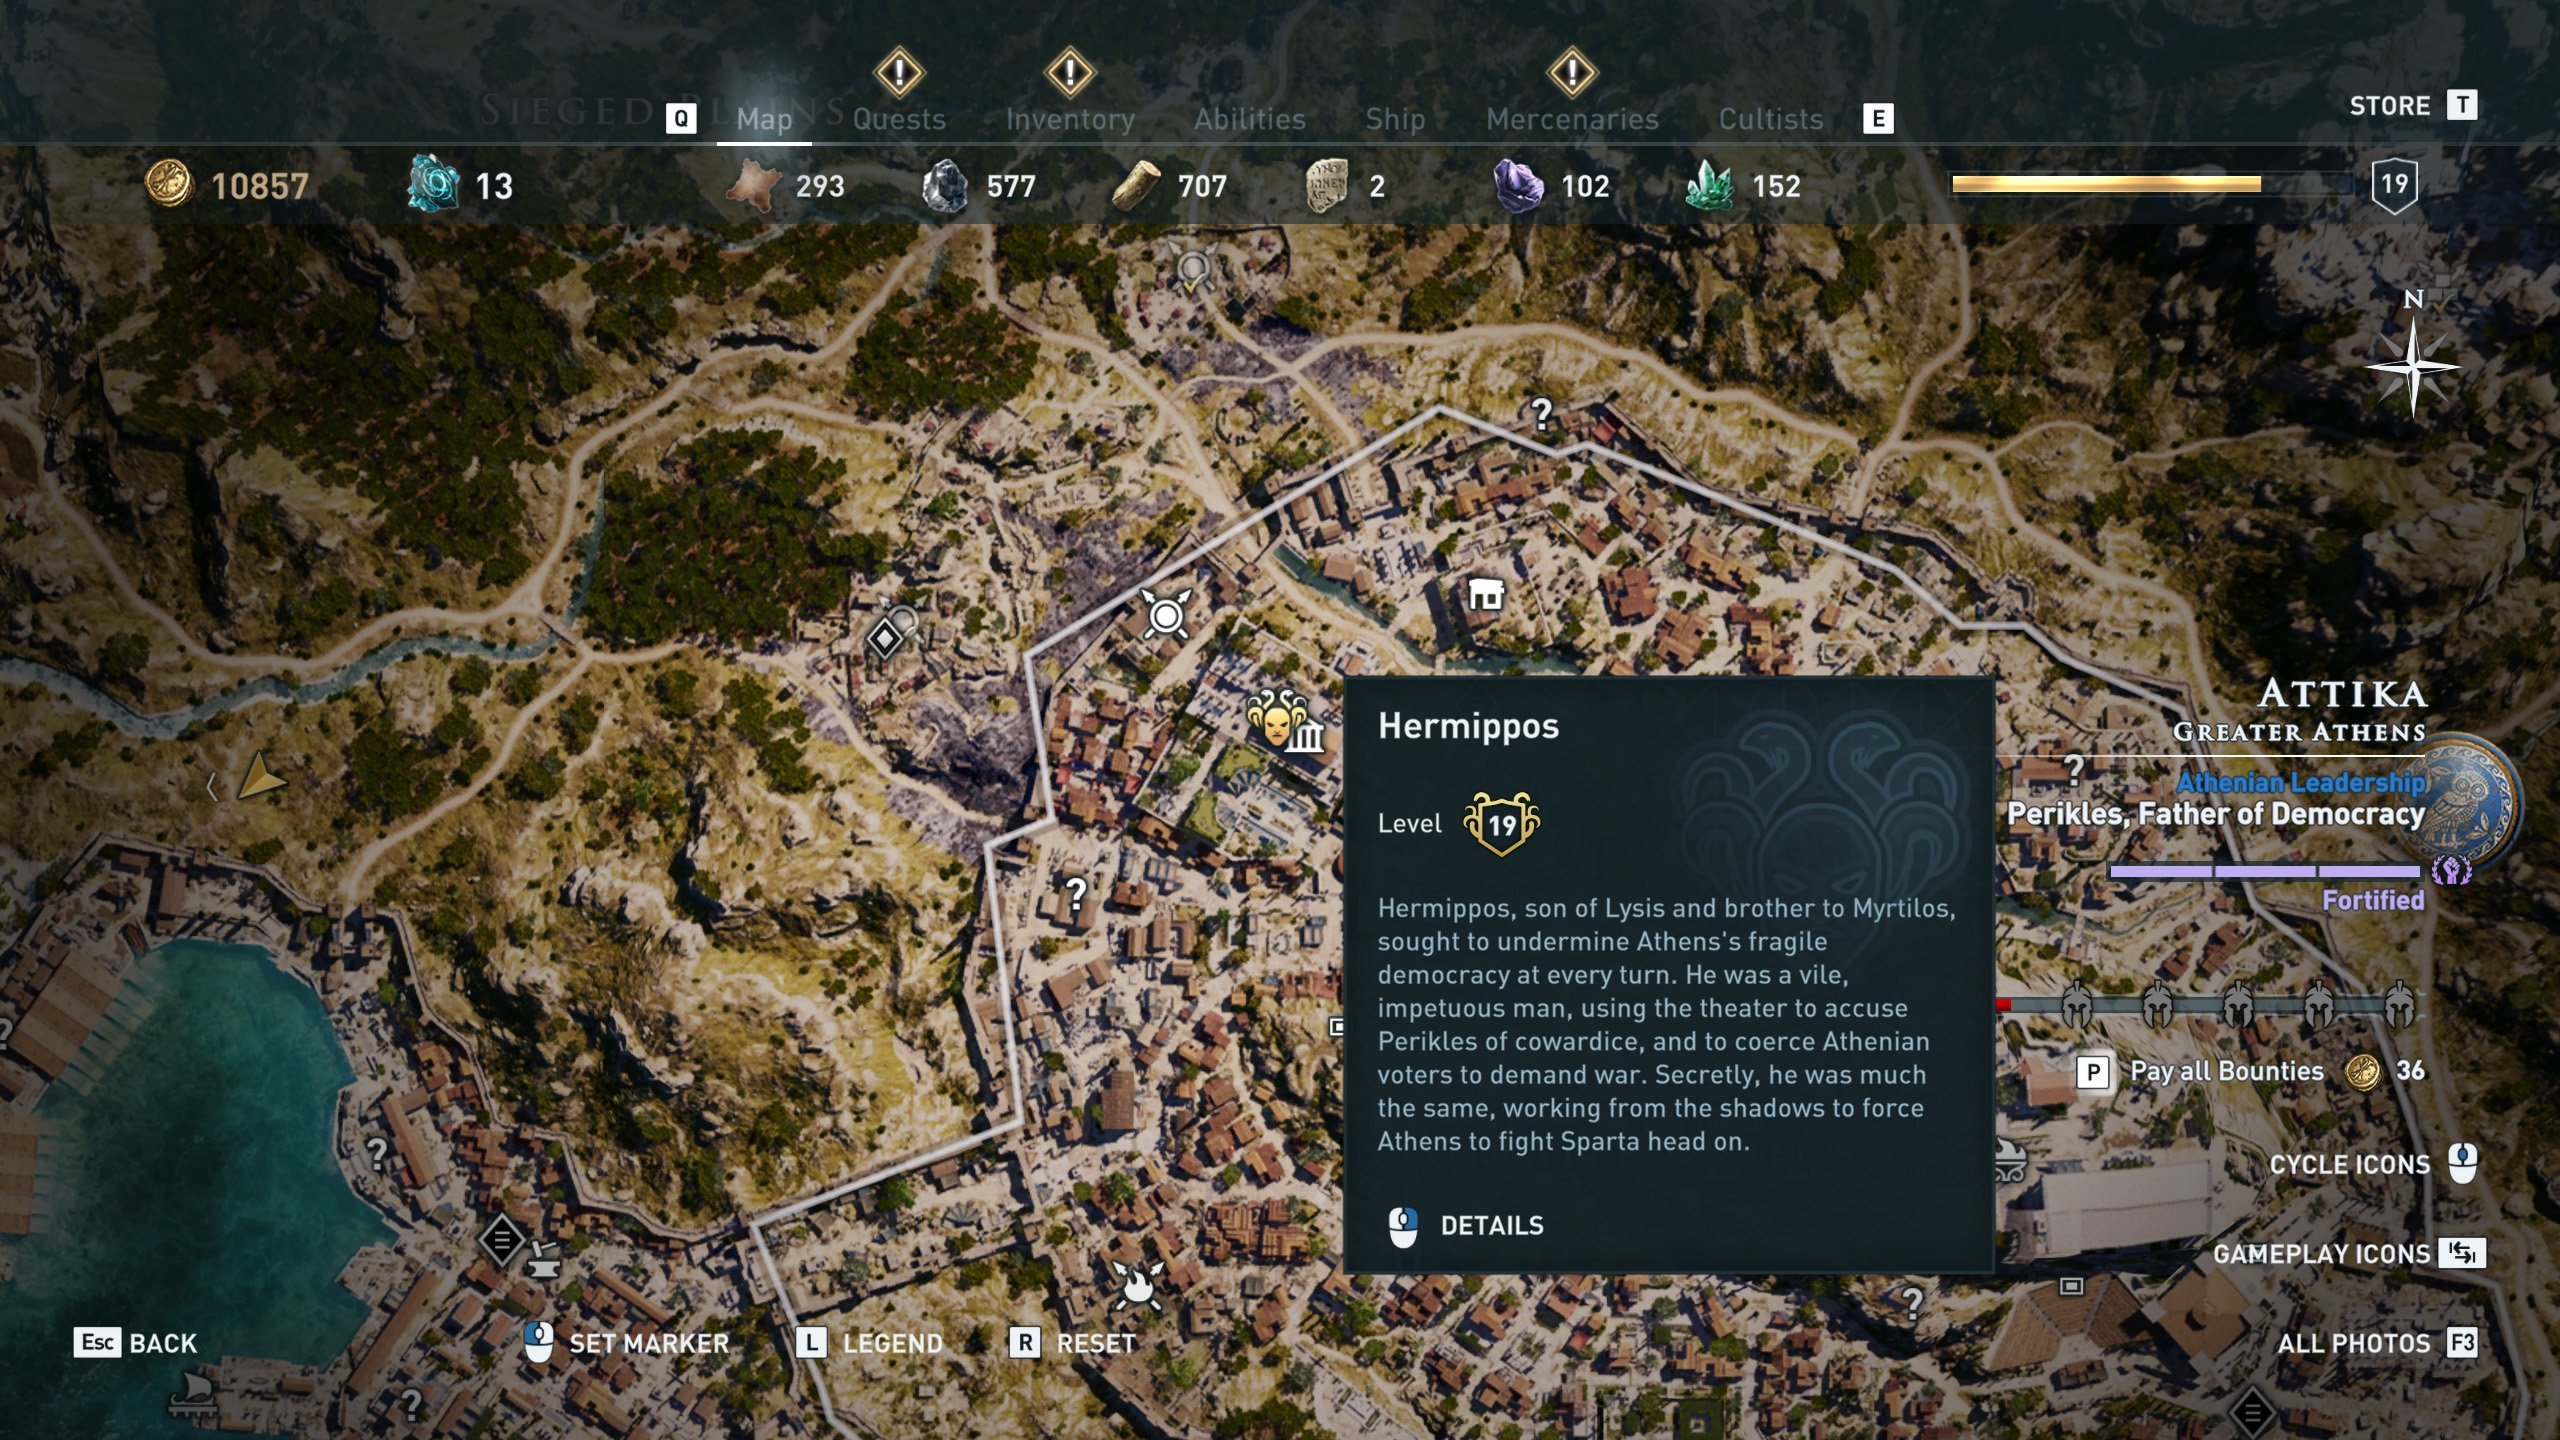 Where to find all The Eyes of Kosmos in Assassin's Creed Odyssey